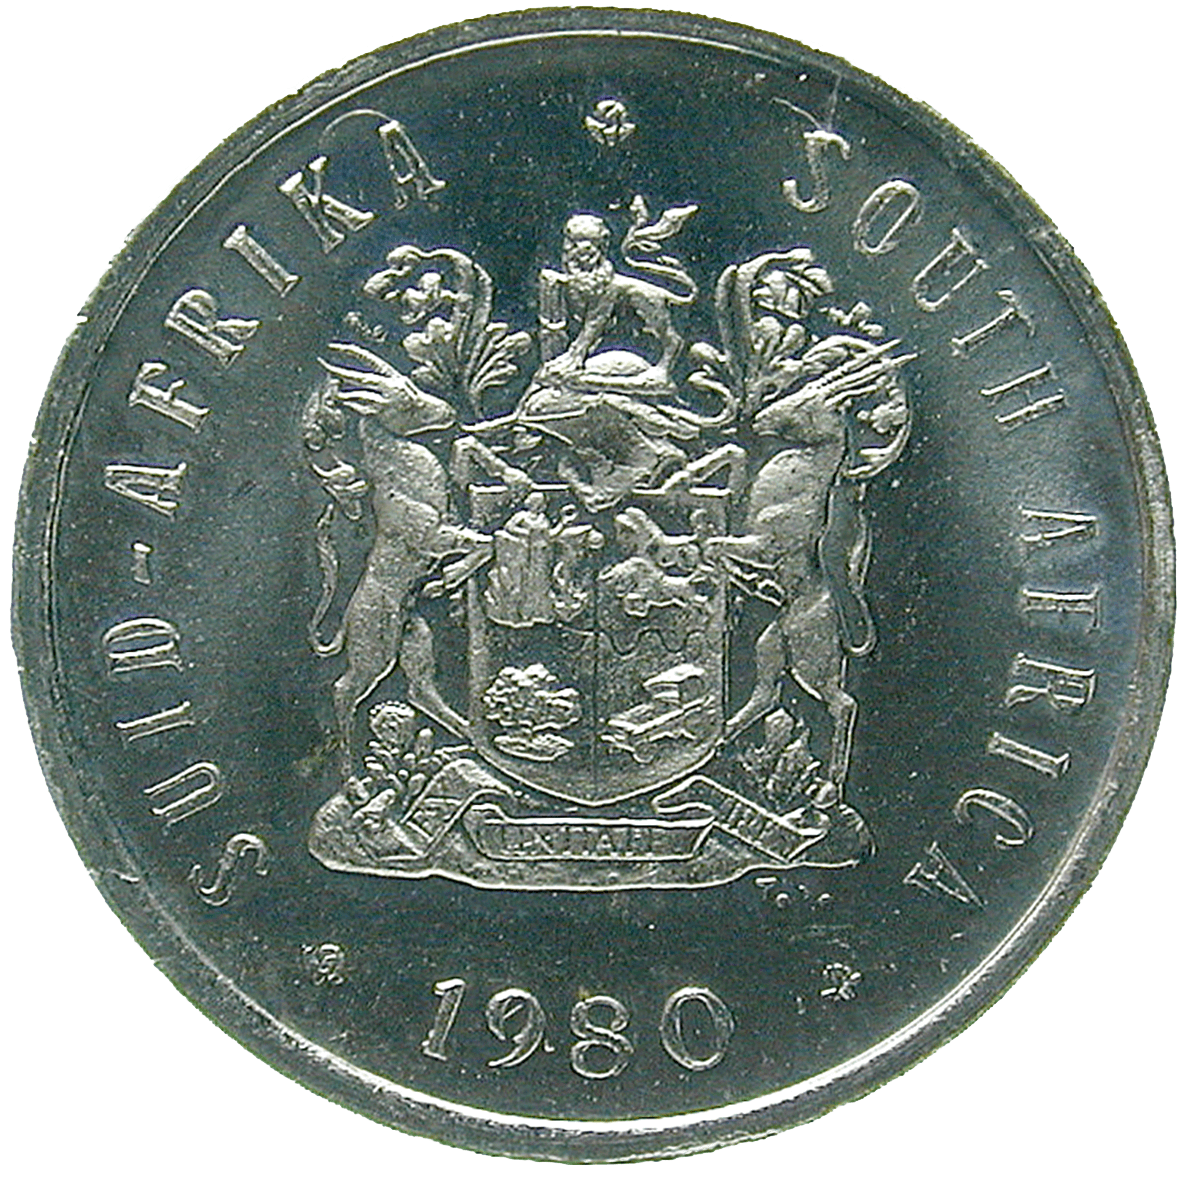 Republic of South Africa, 5 Cents 1980 (obverse)